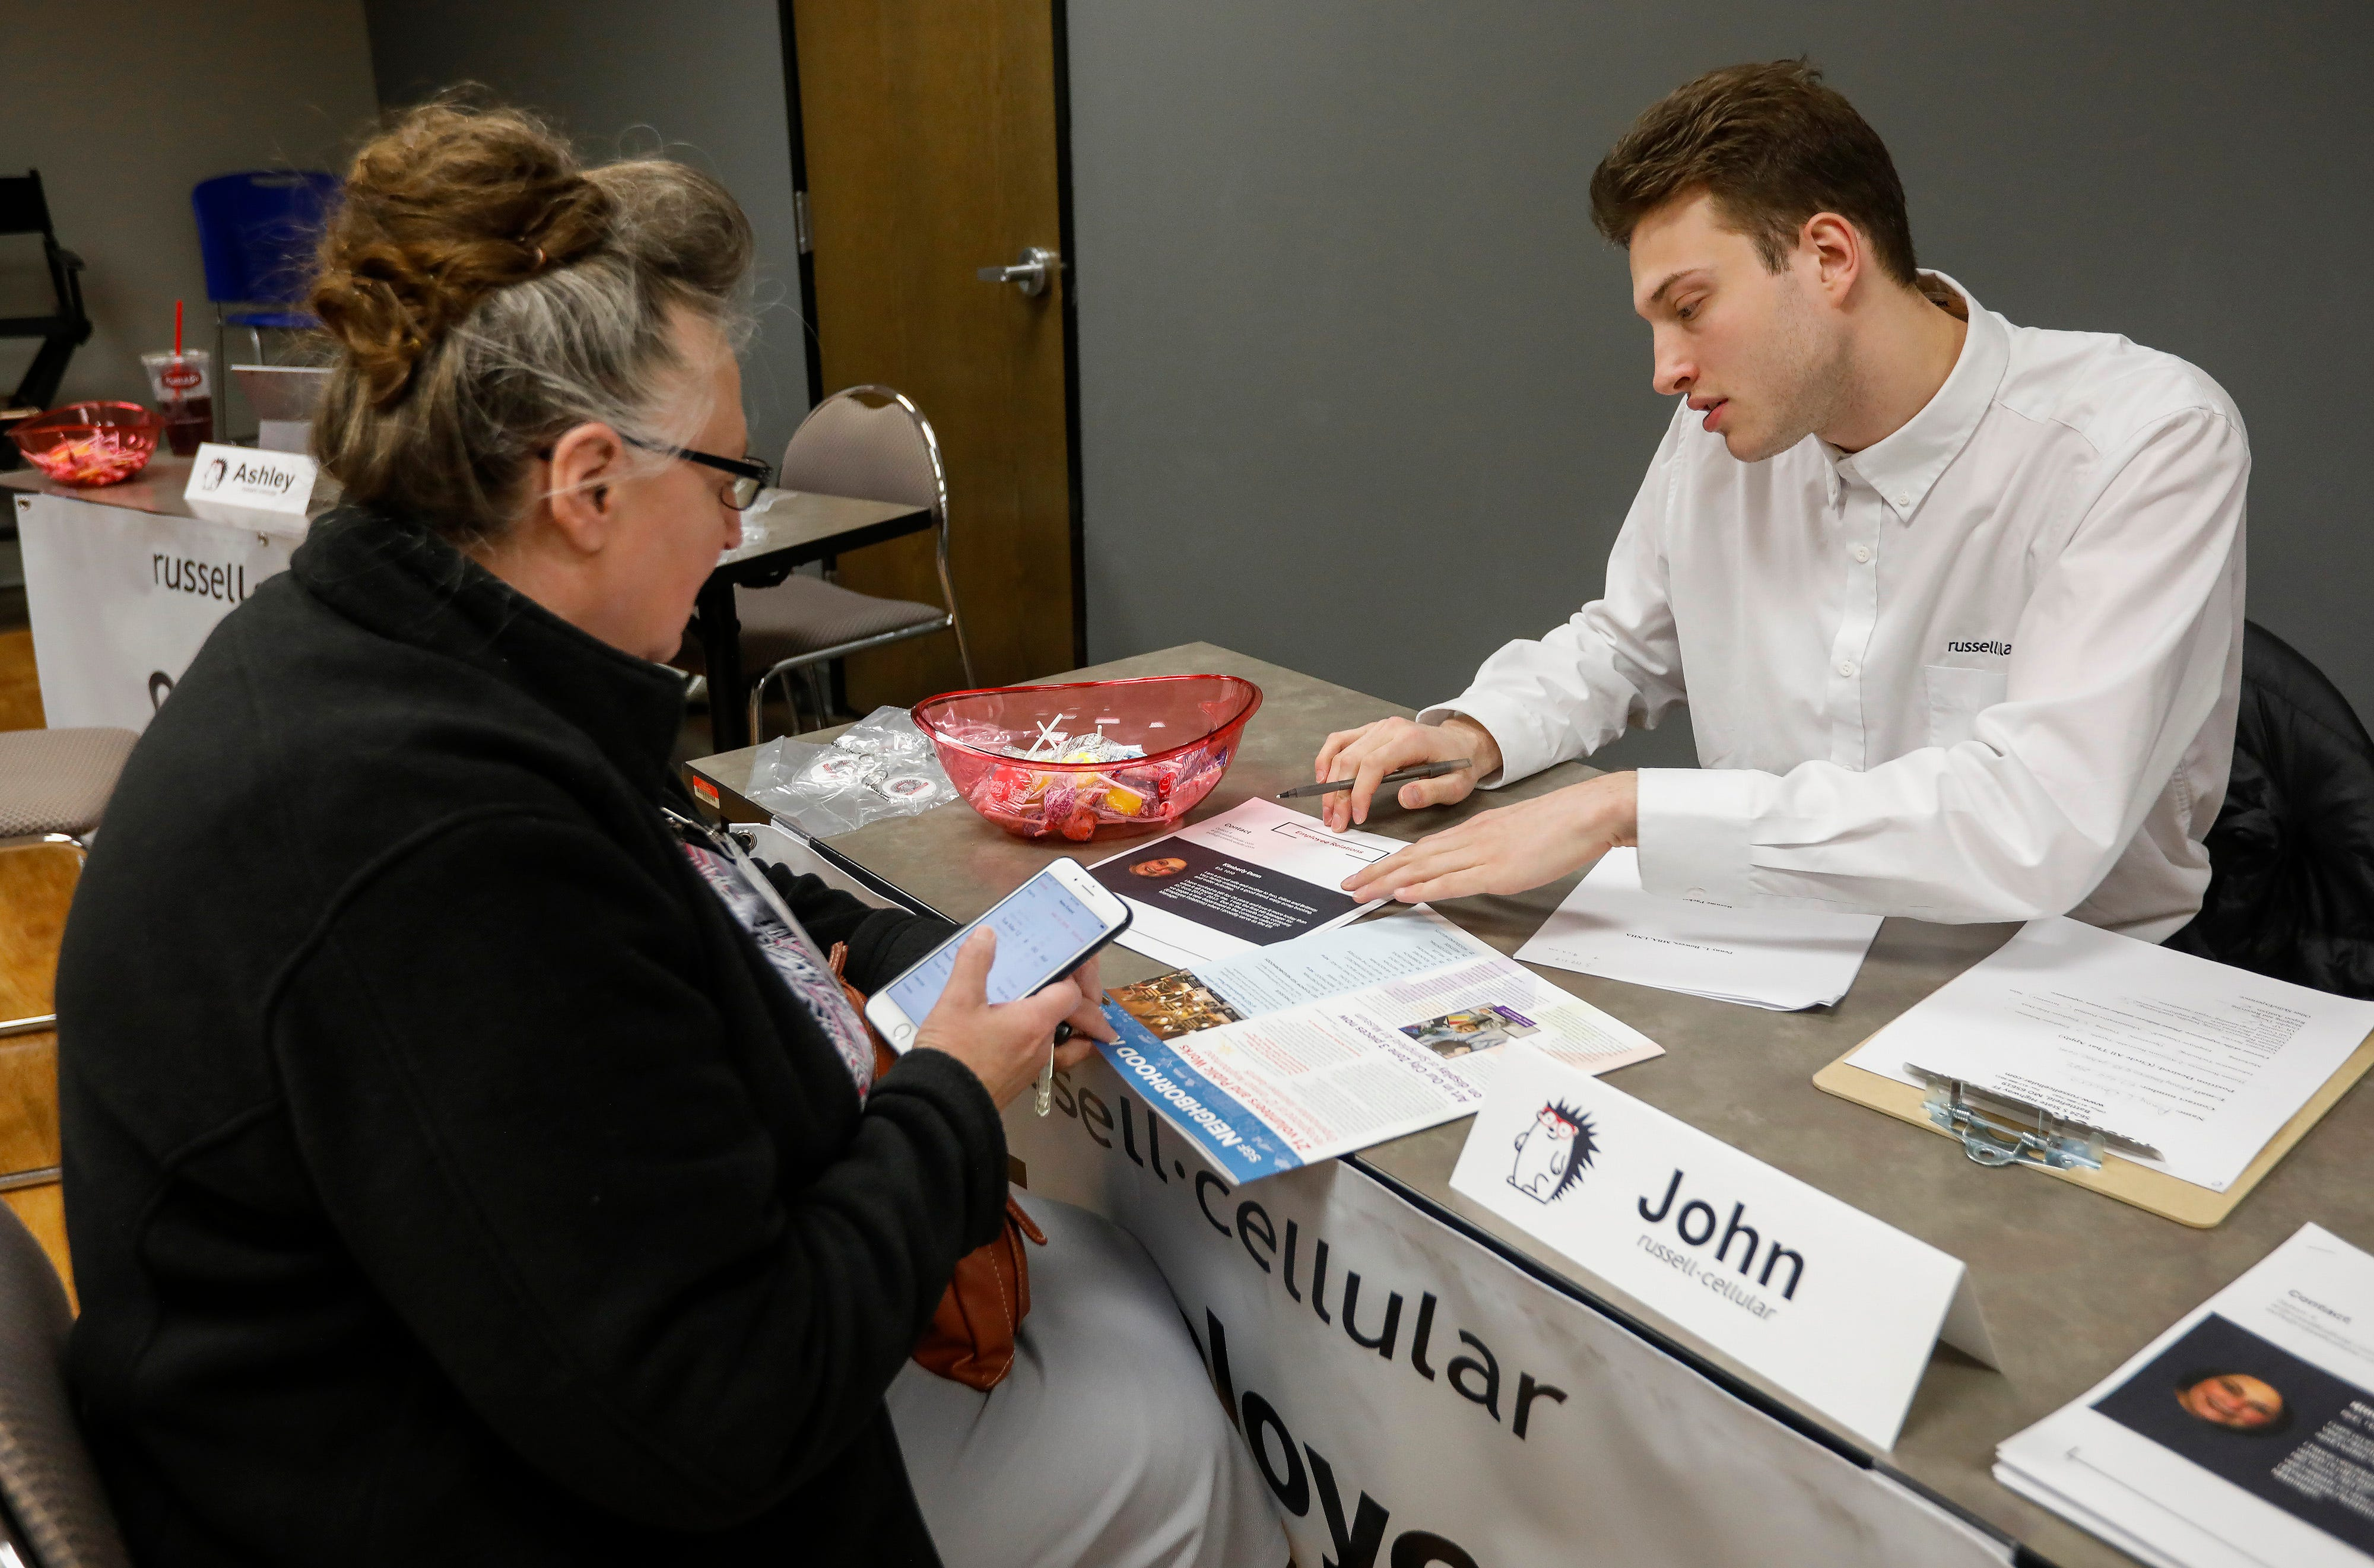 Penny Bowers, of Springfield, speaks with John Bogue, of Russell-Cellular, during a hiring event at the Missouri Career Center on Thursday, March 7, 2019.